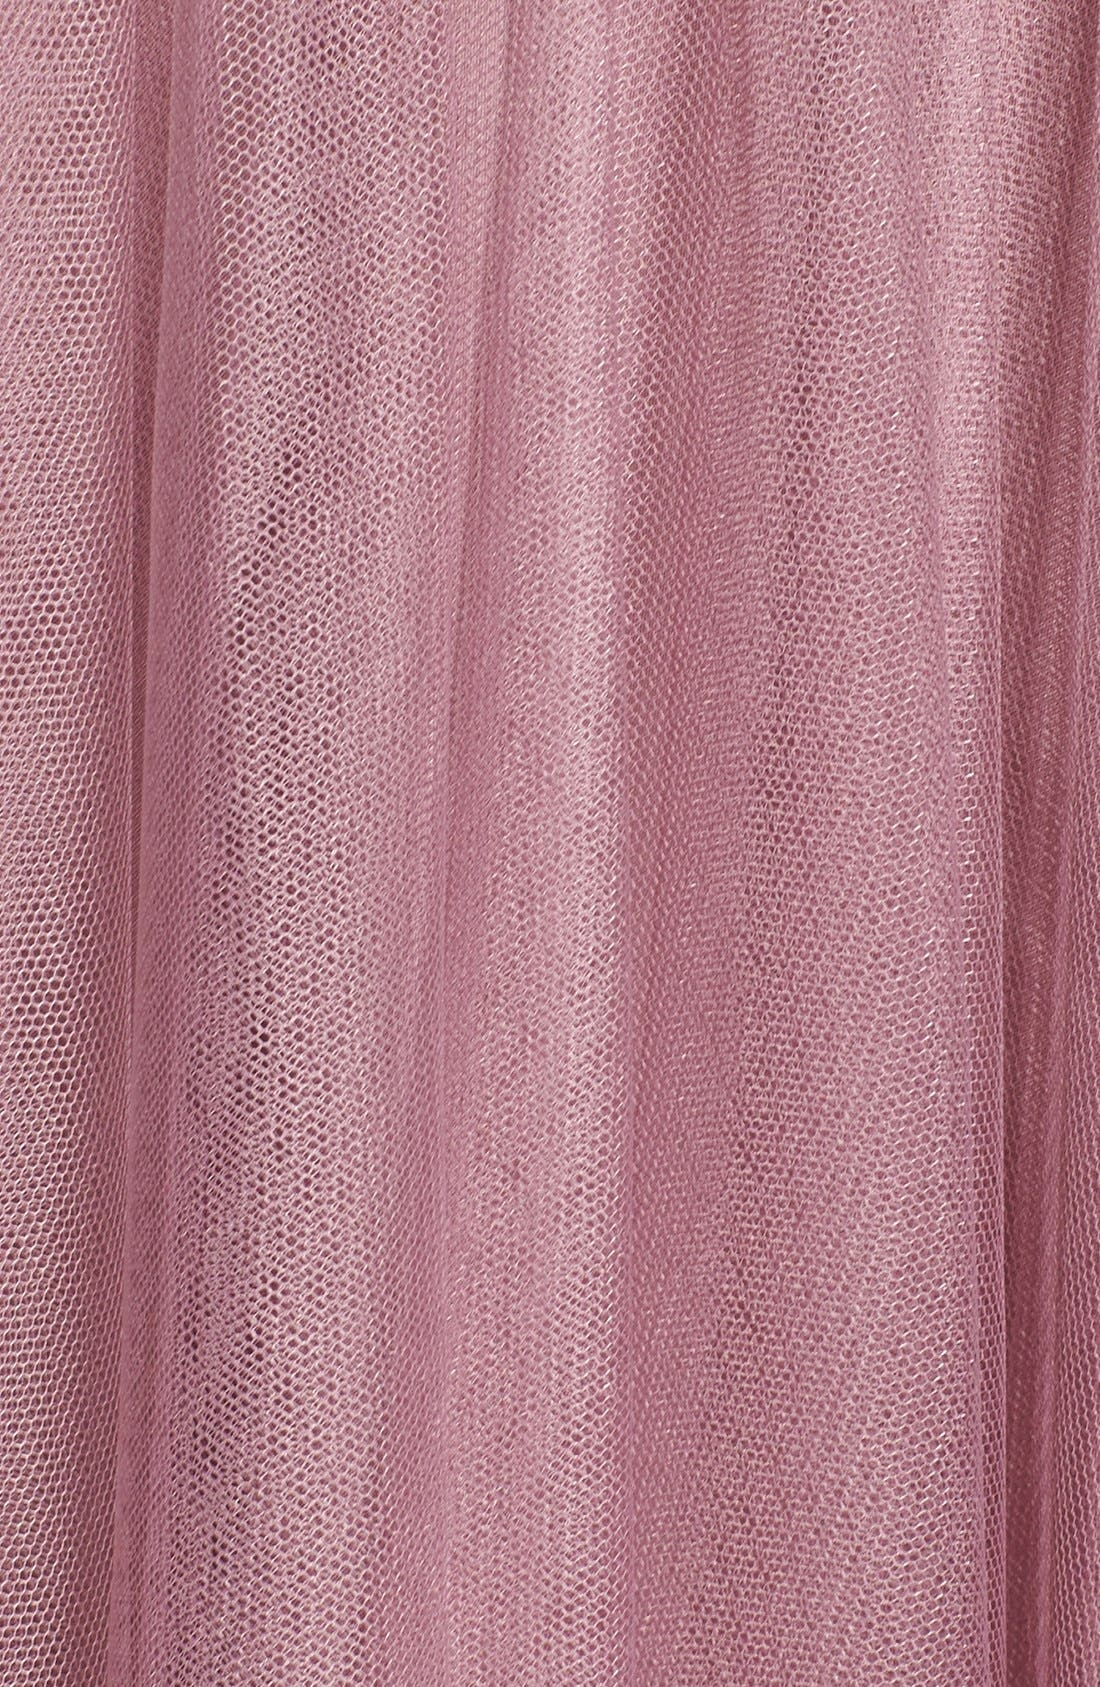 Pleat Tulle V-Neck High/Low Gown,                             Alternate thumbnail 6, color,                             Cerise